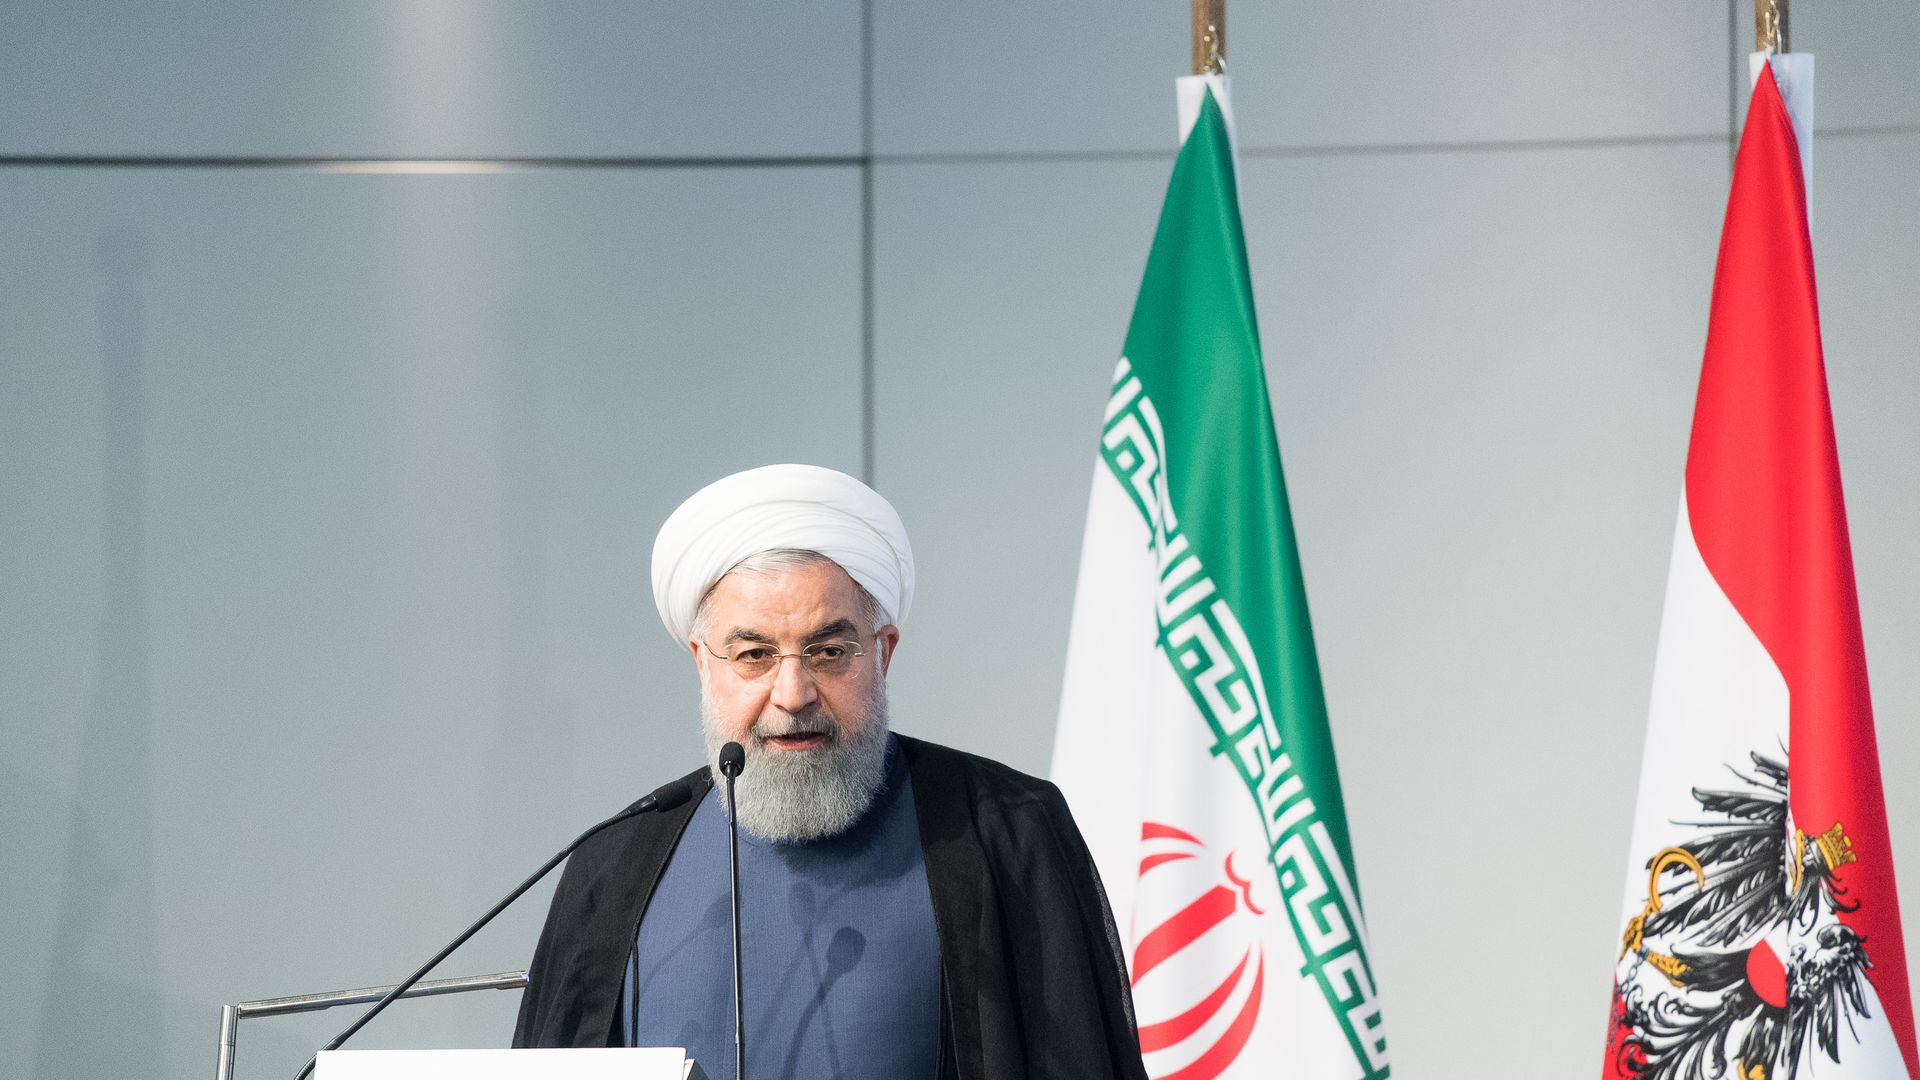 Iranian President Hassan Rouhani speaking in front of two flags.